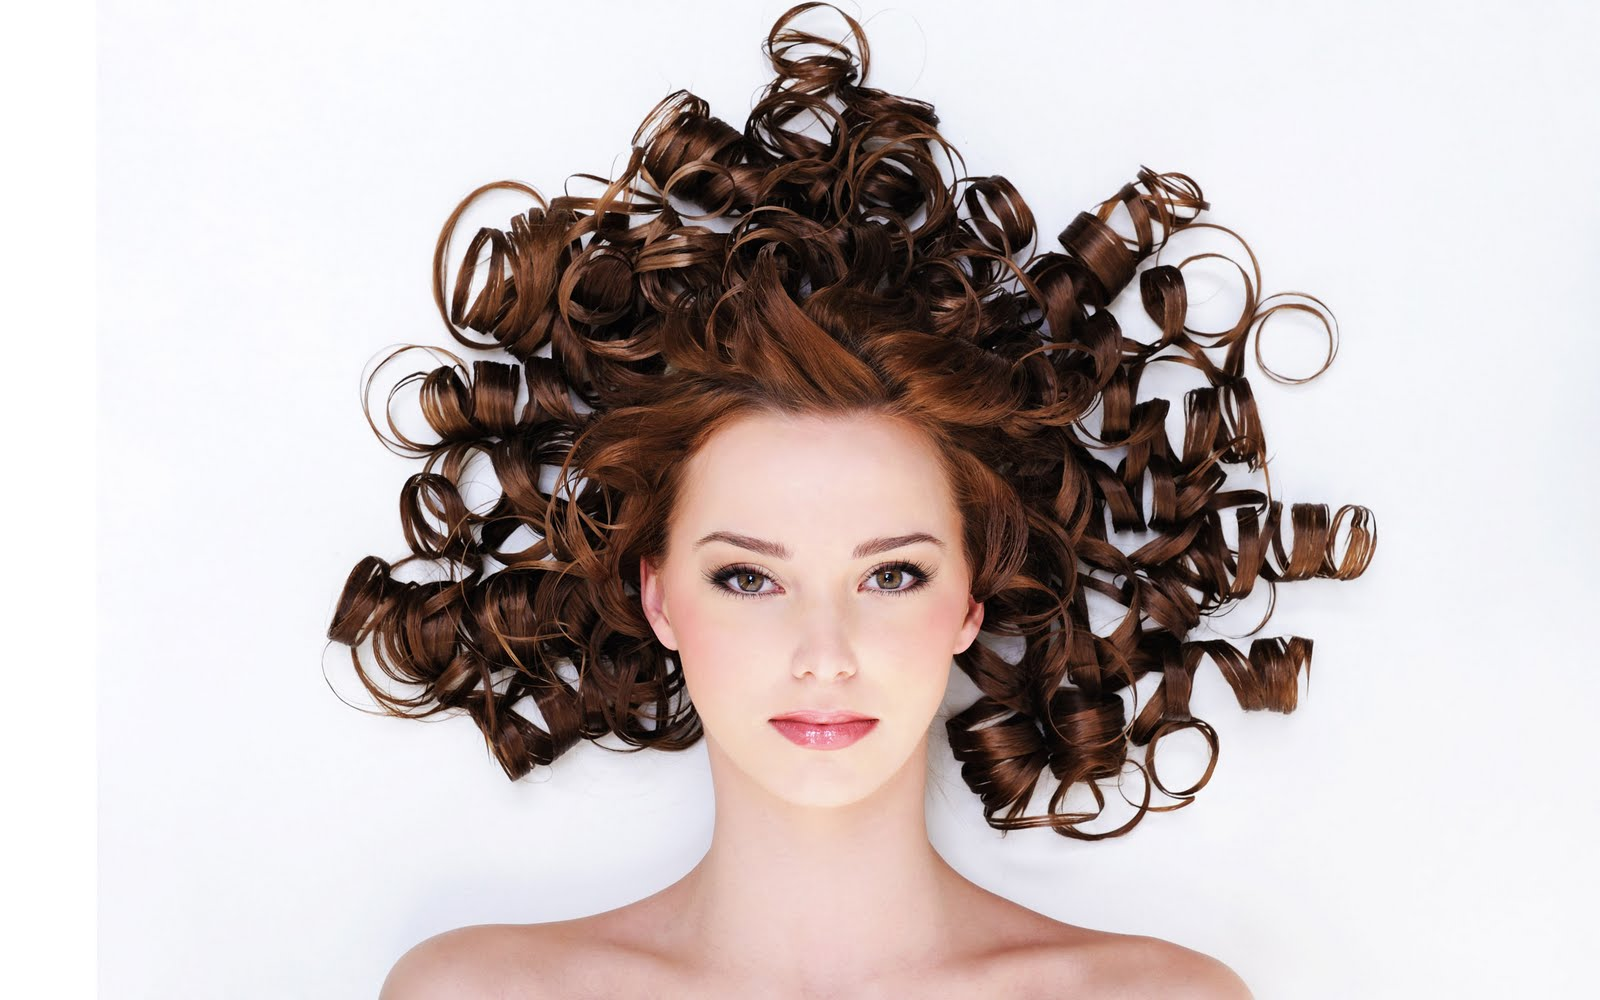 I Hair Style Image: Wallpaper Hair Style